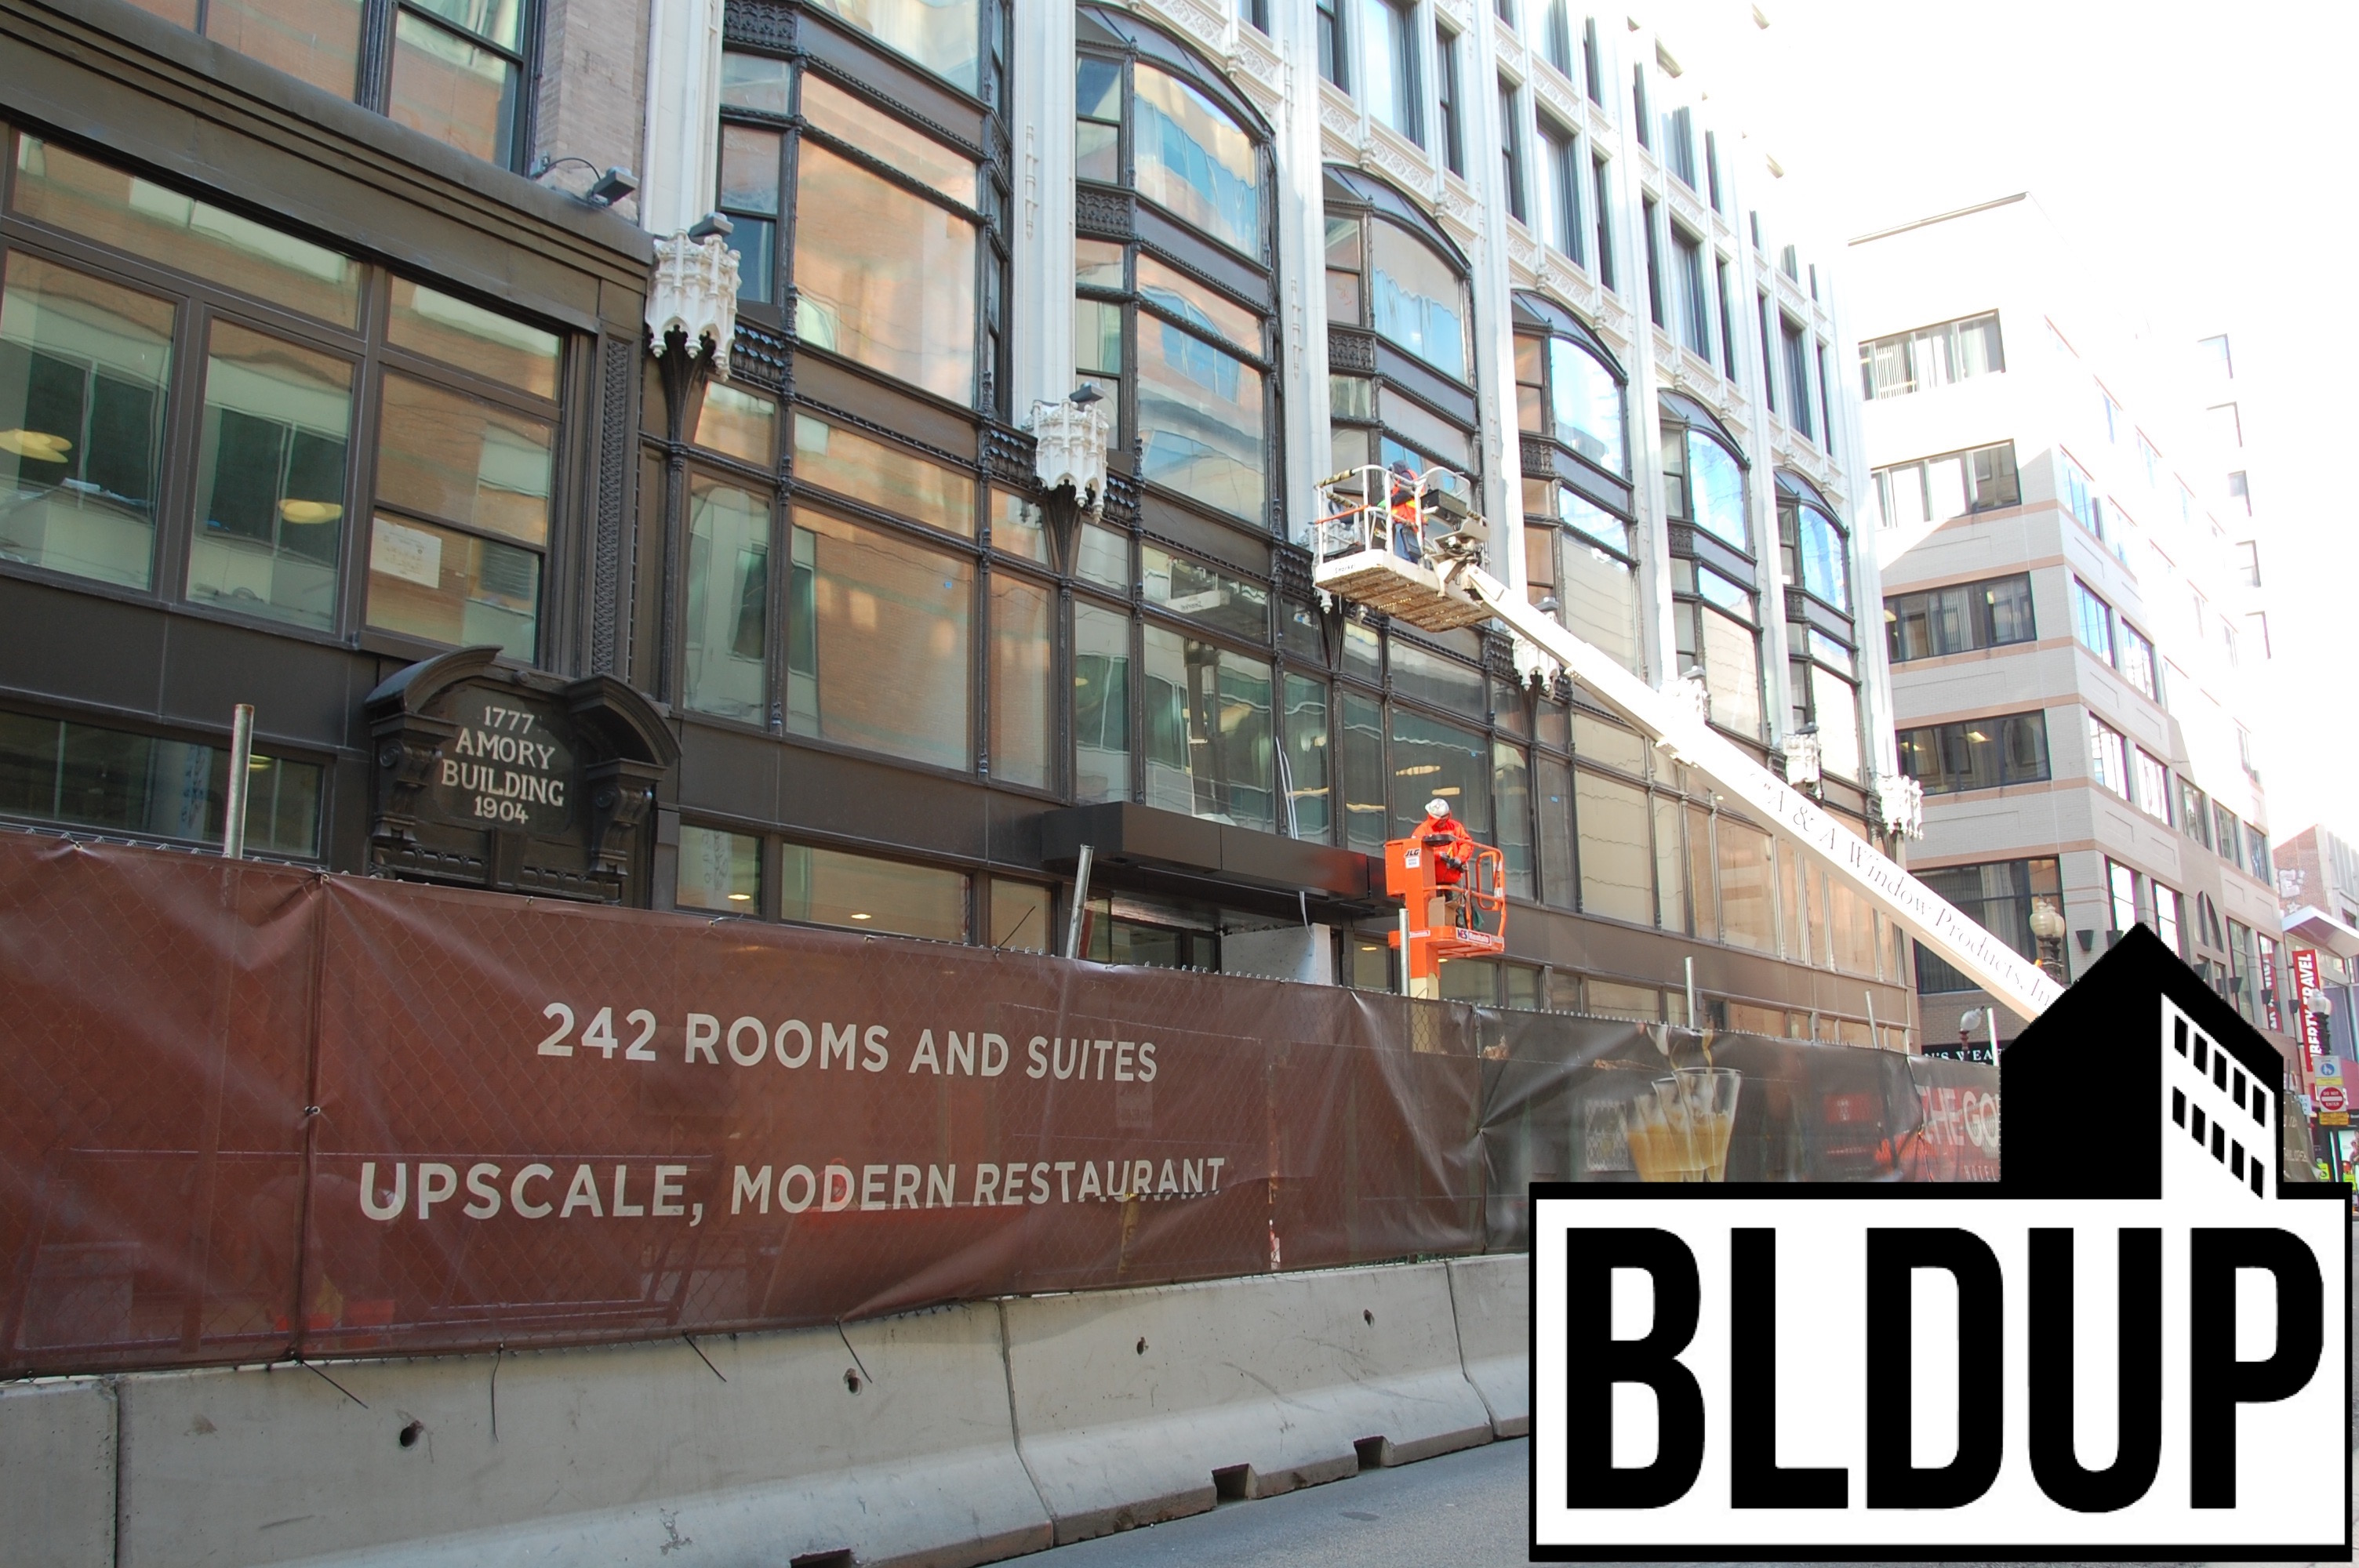 Godfrey hotel downtown crossing urban boston oxford capital tishman construction 21